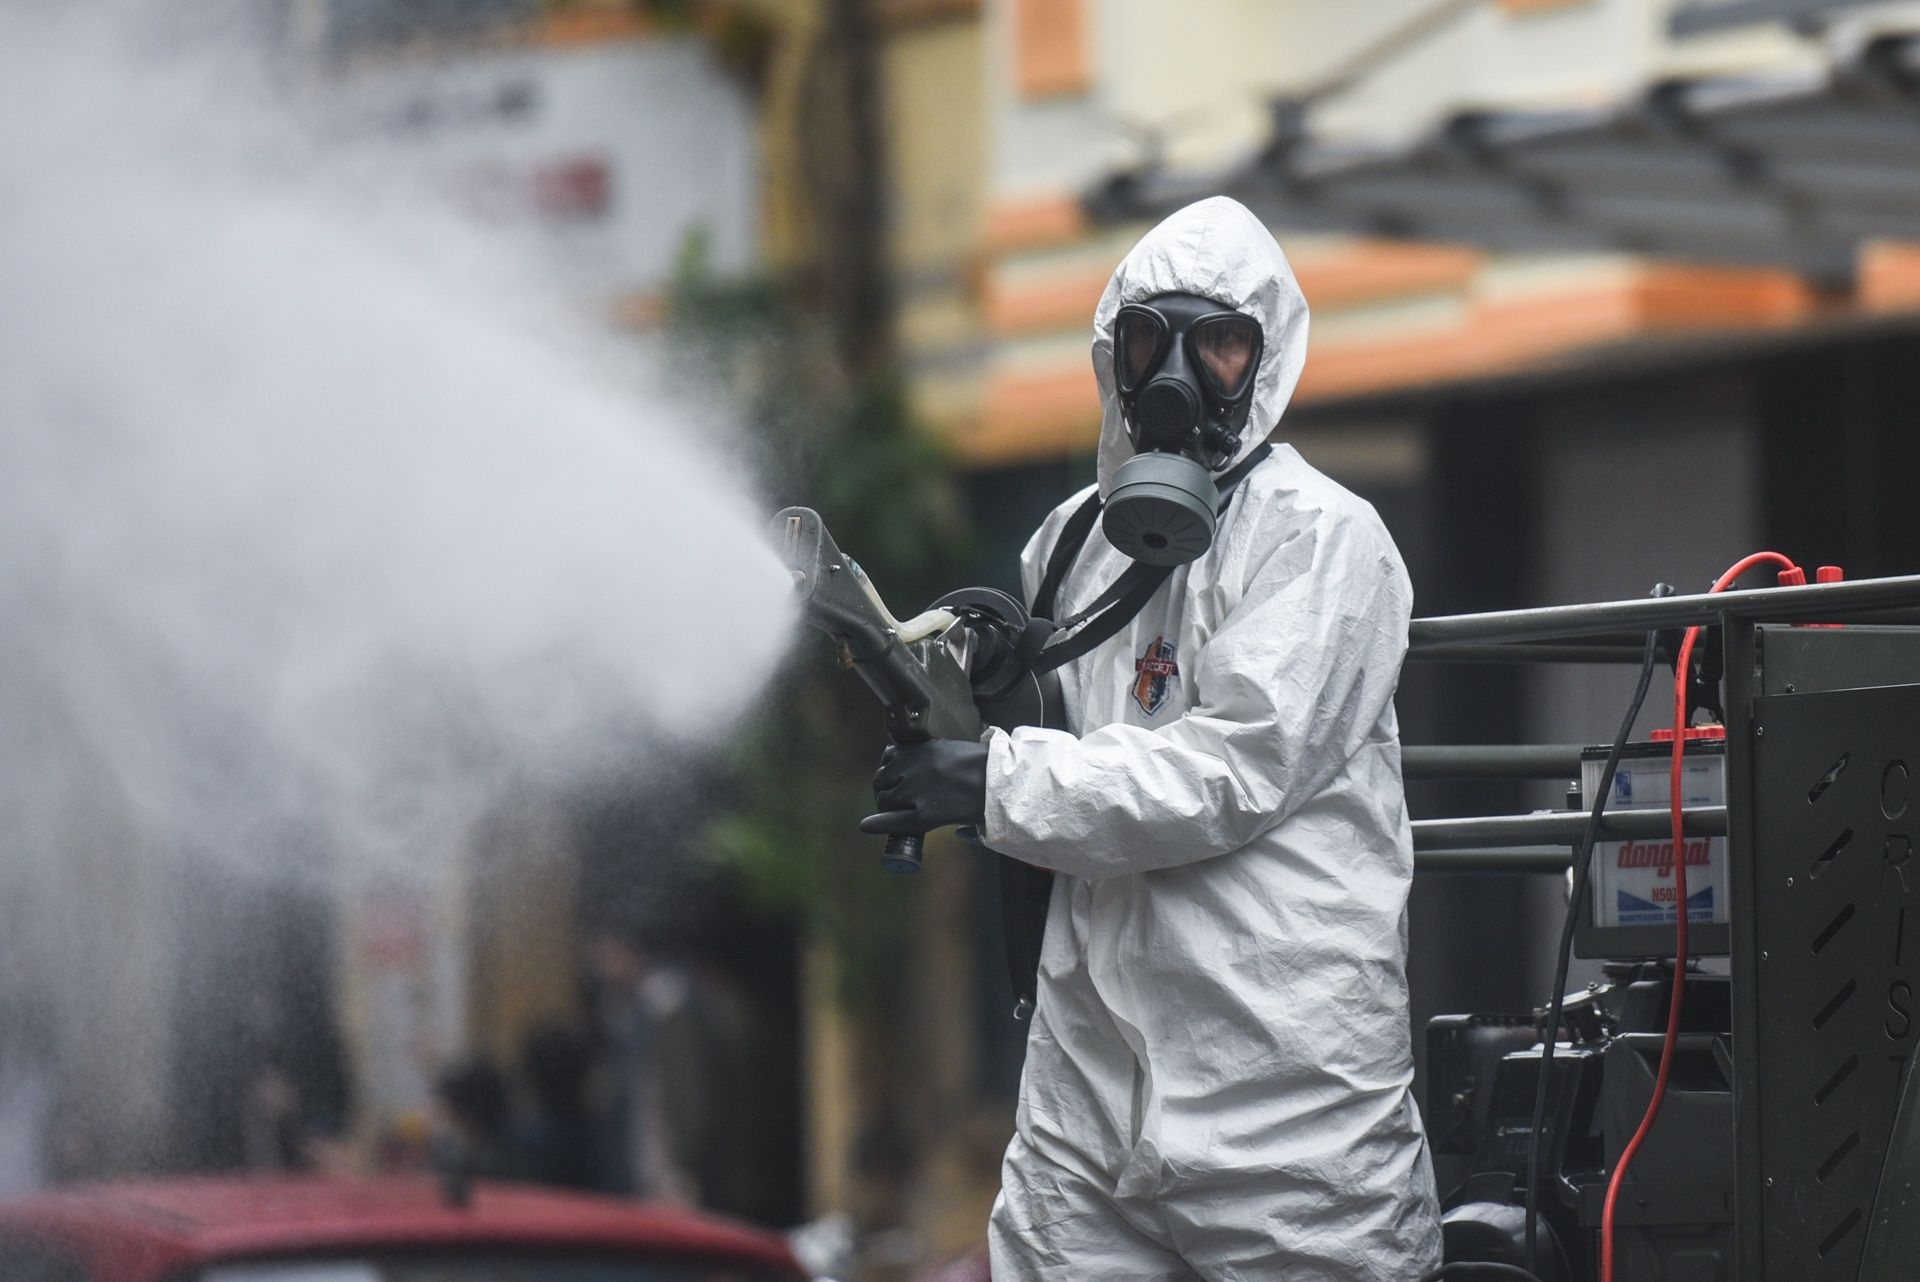 imf vietnam boasts a successful example of how a developing country can fight a pandemic